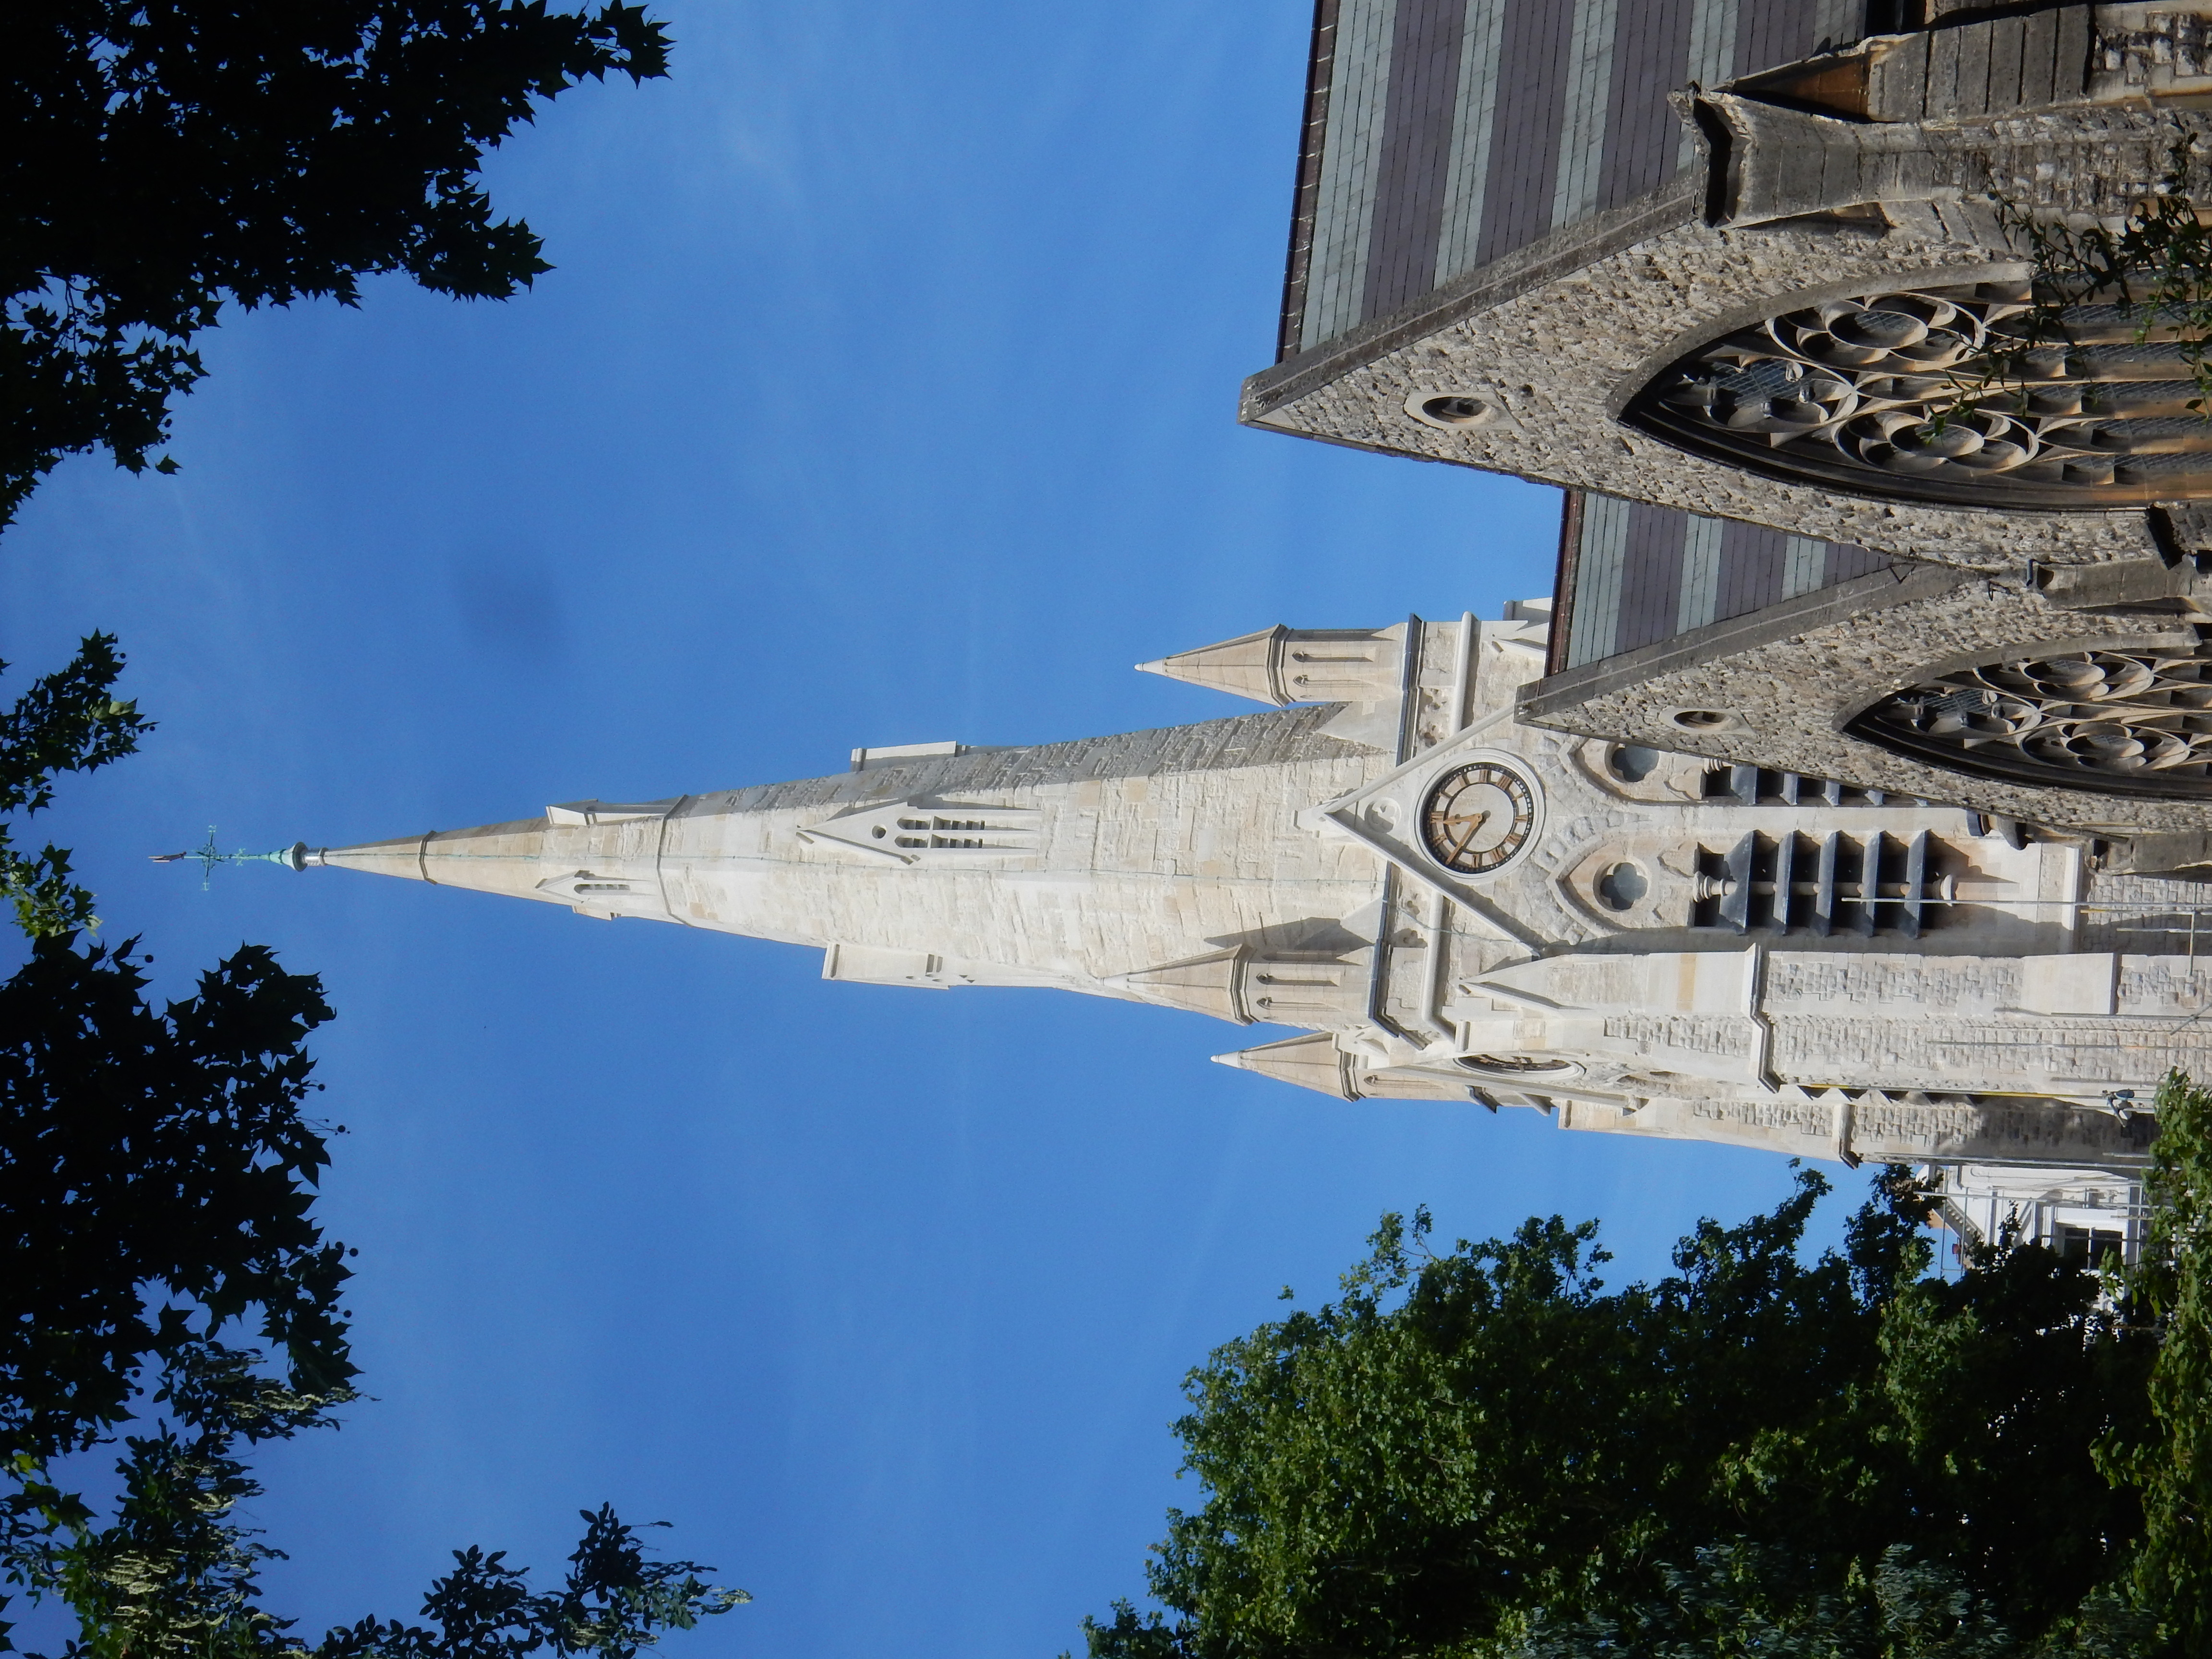 St Jude's church, now occupied by St Millitus college, Kensington -  Completed spire